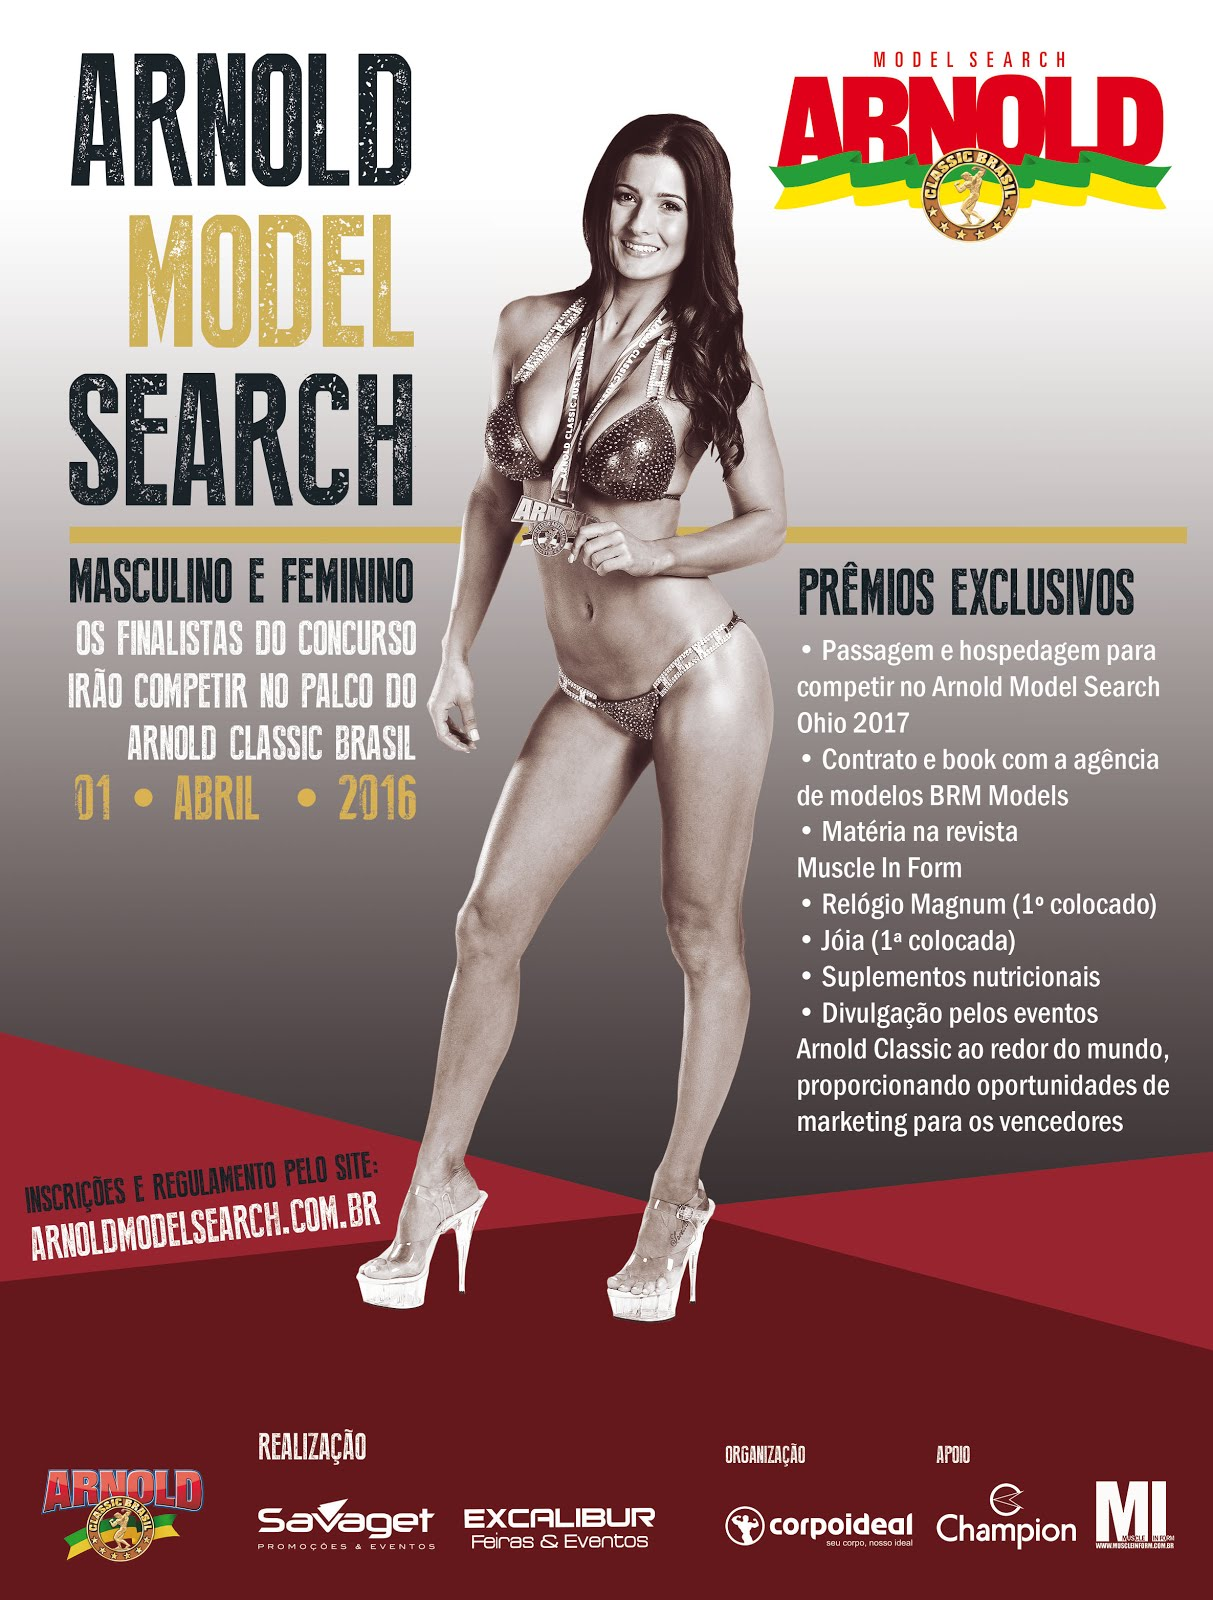 Model Search Arnold 2016 - Inscreva-se